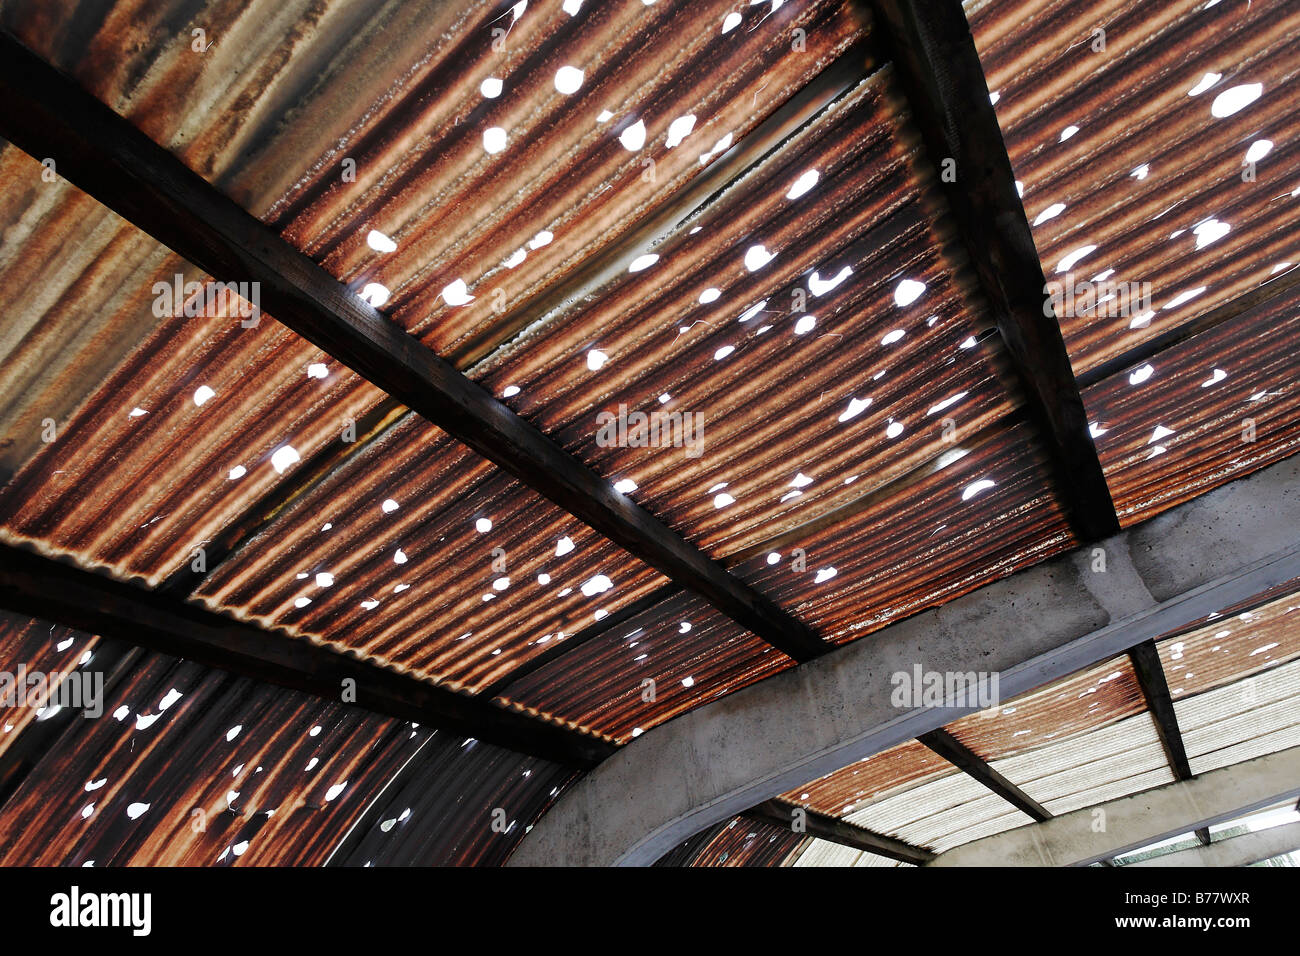 Corrugated roof made of plastic, holes caused by hail, brown colouring caused by pollution, industrial area, Rhine - Stock Image